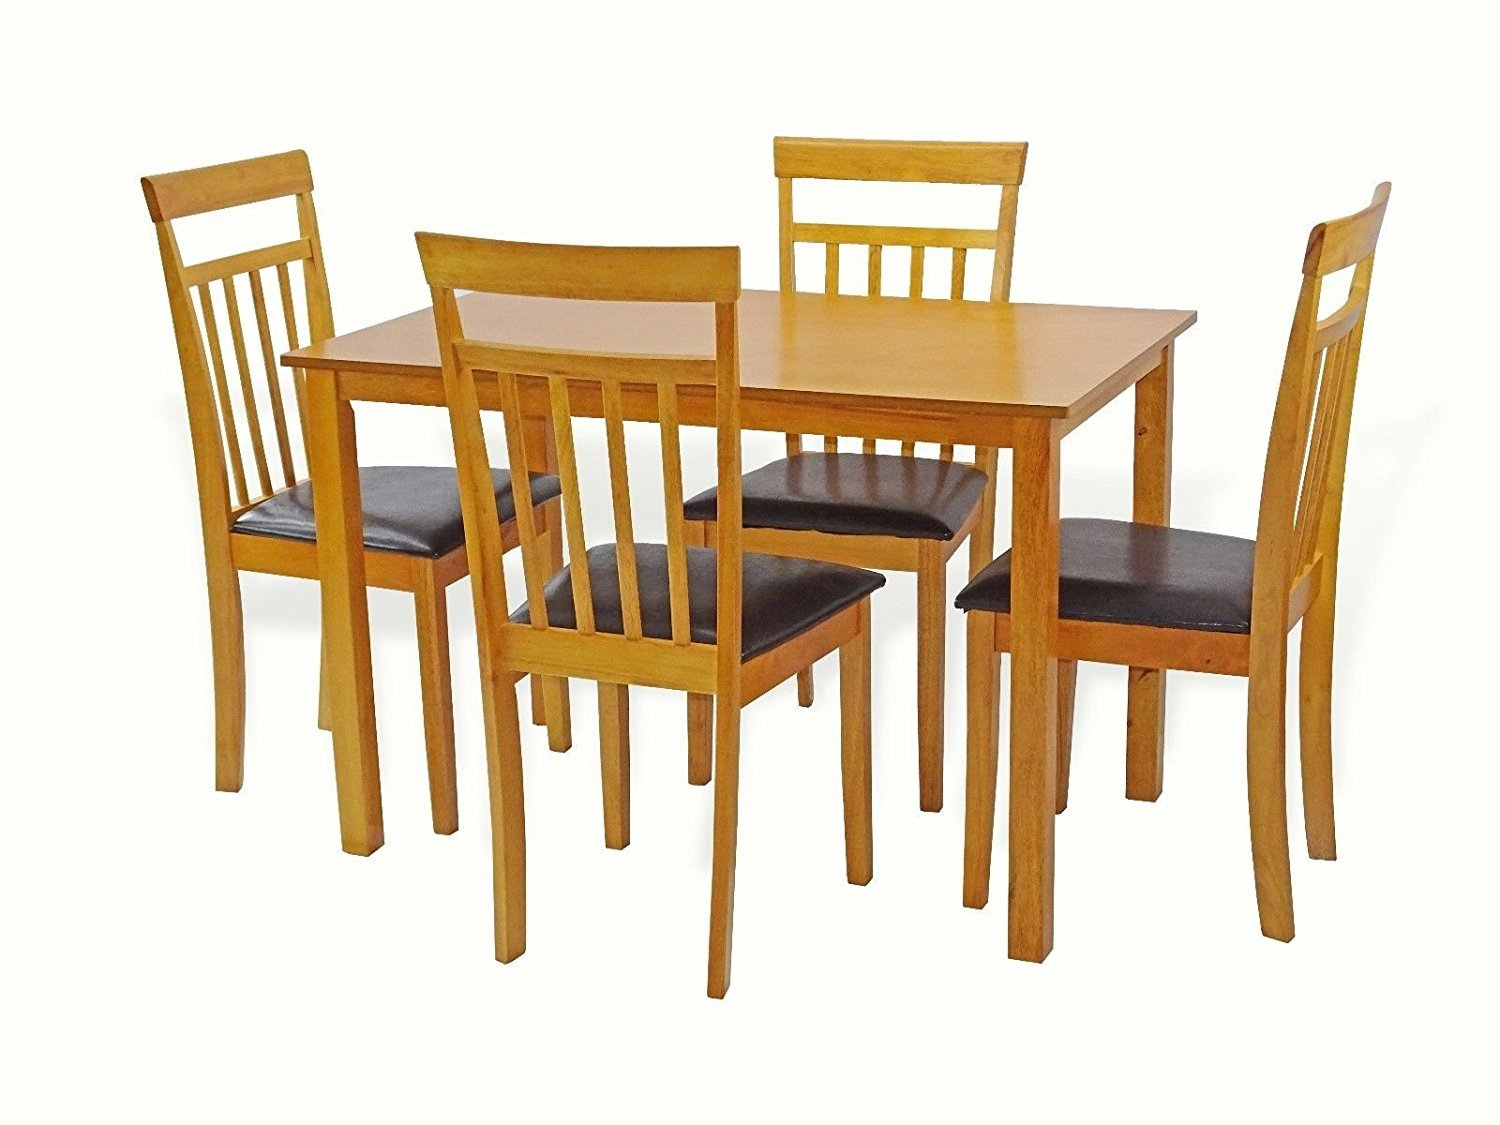 Dining Kitchen Set of 5 Classic Dining Table And 4 Side Warm Chairs Classic Style Wood in Maple Finish